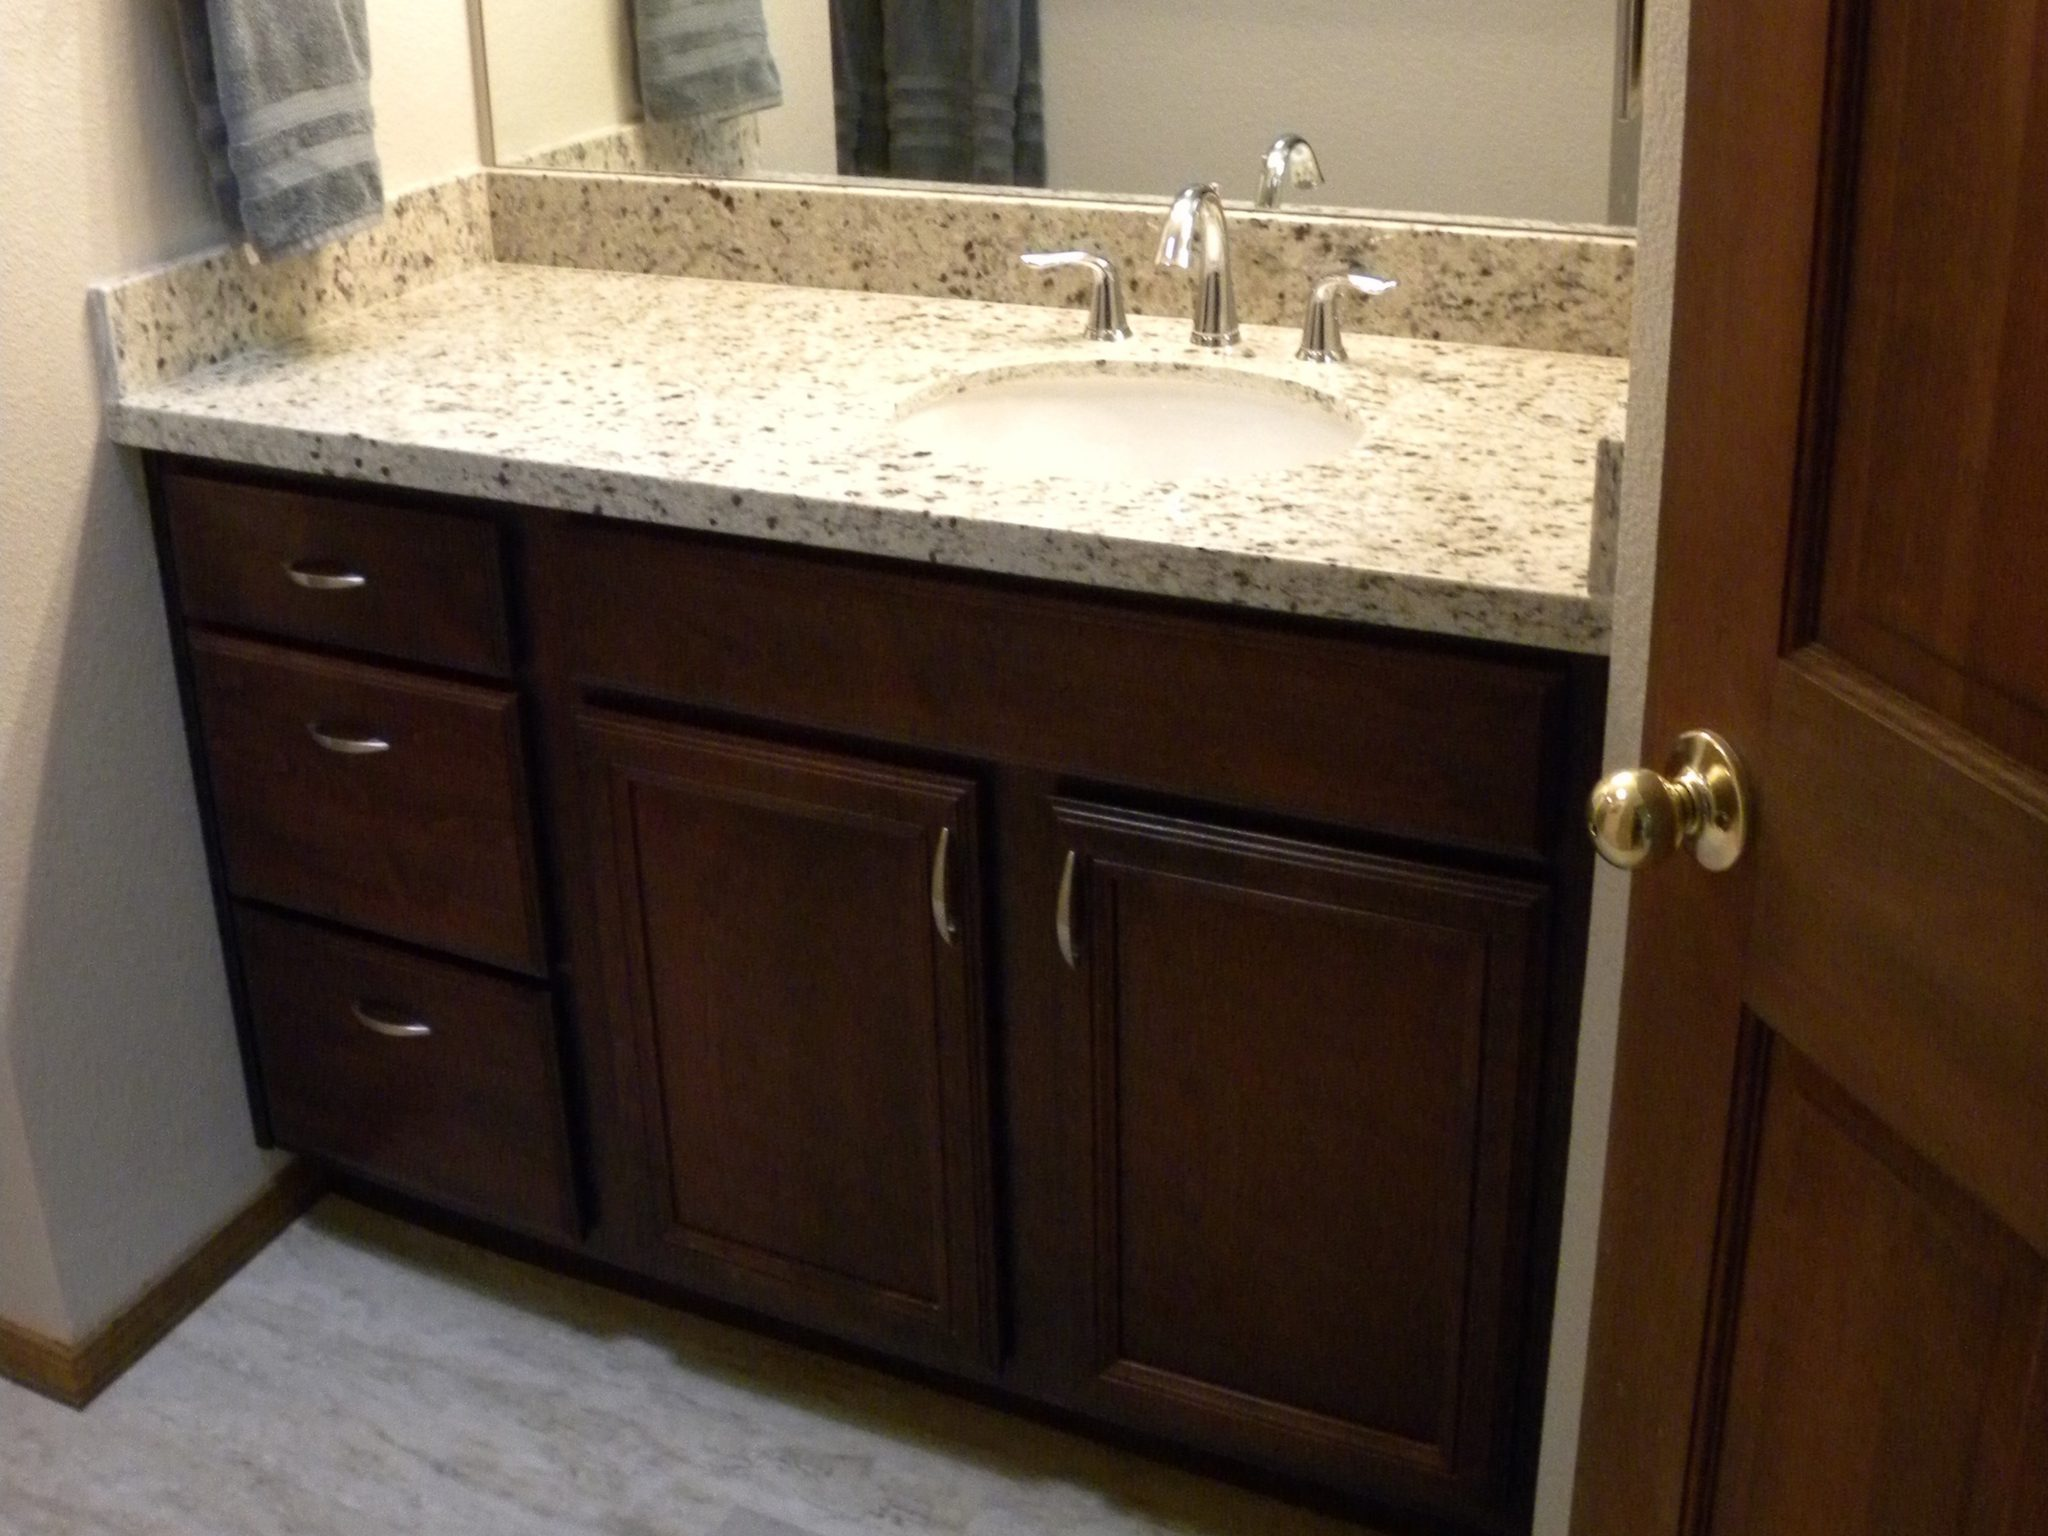 Remodeled bathroom sink with white countertops and dark wooden cabinets